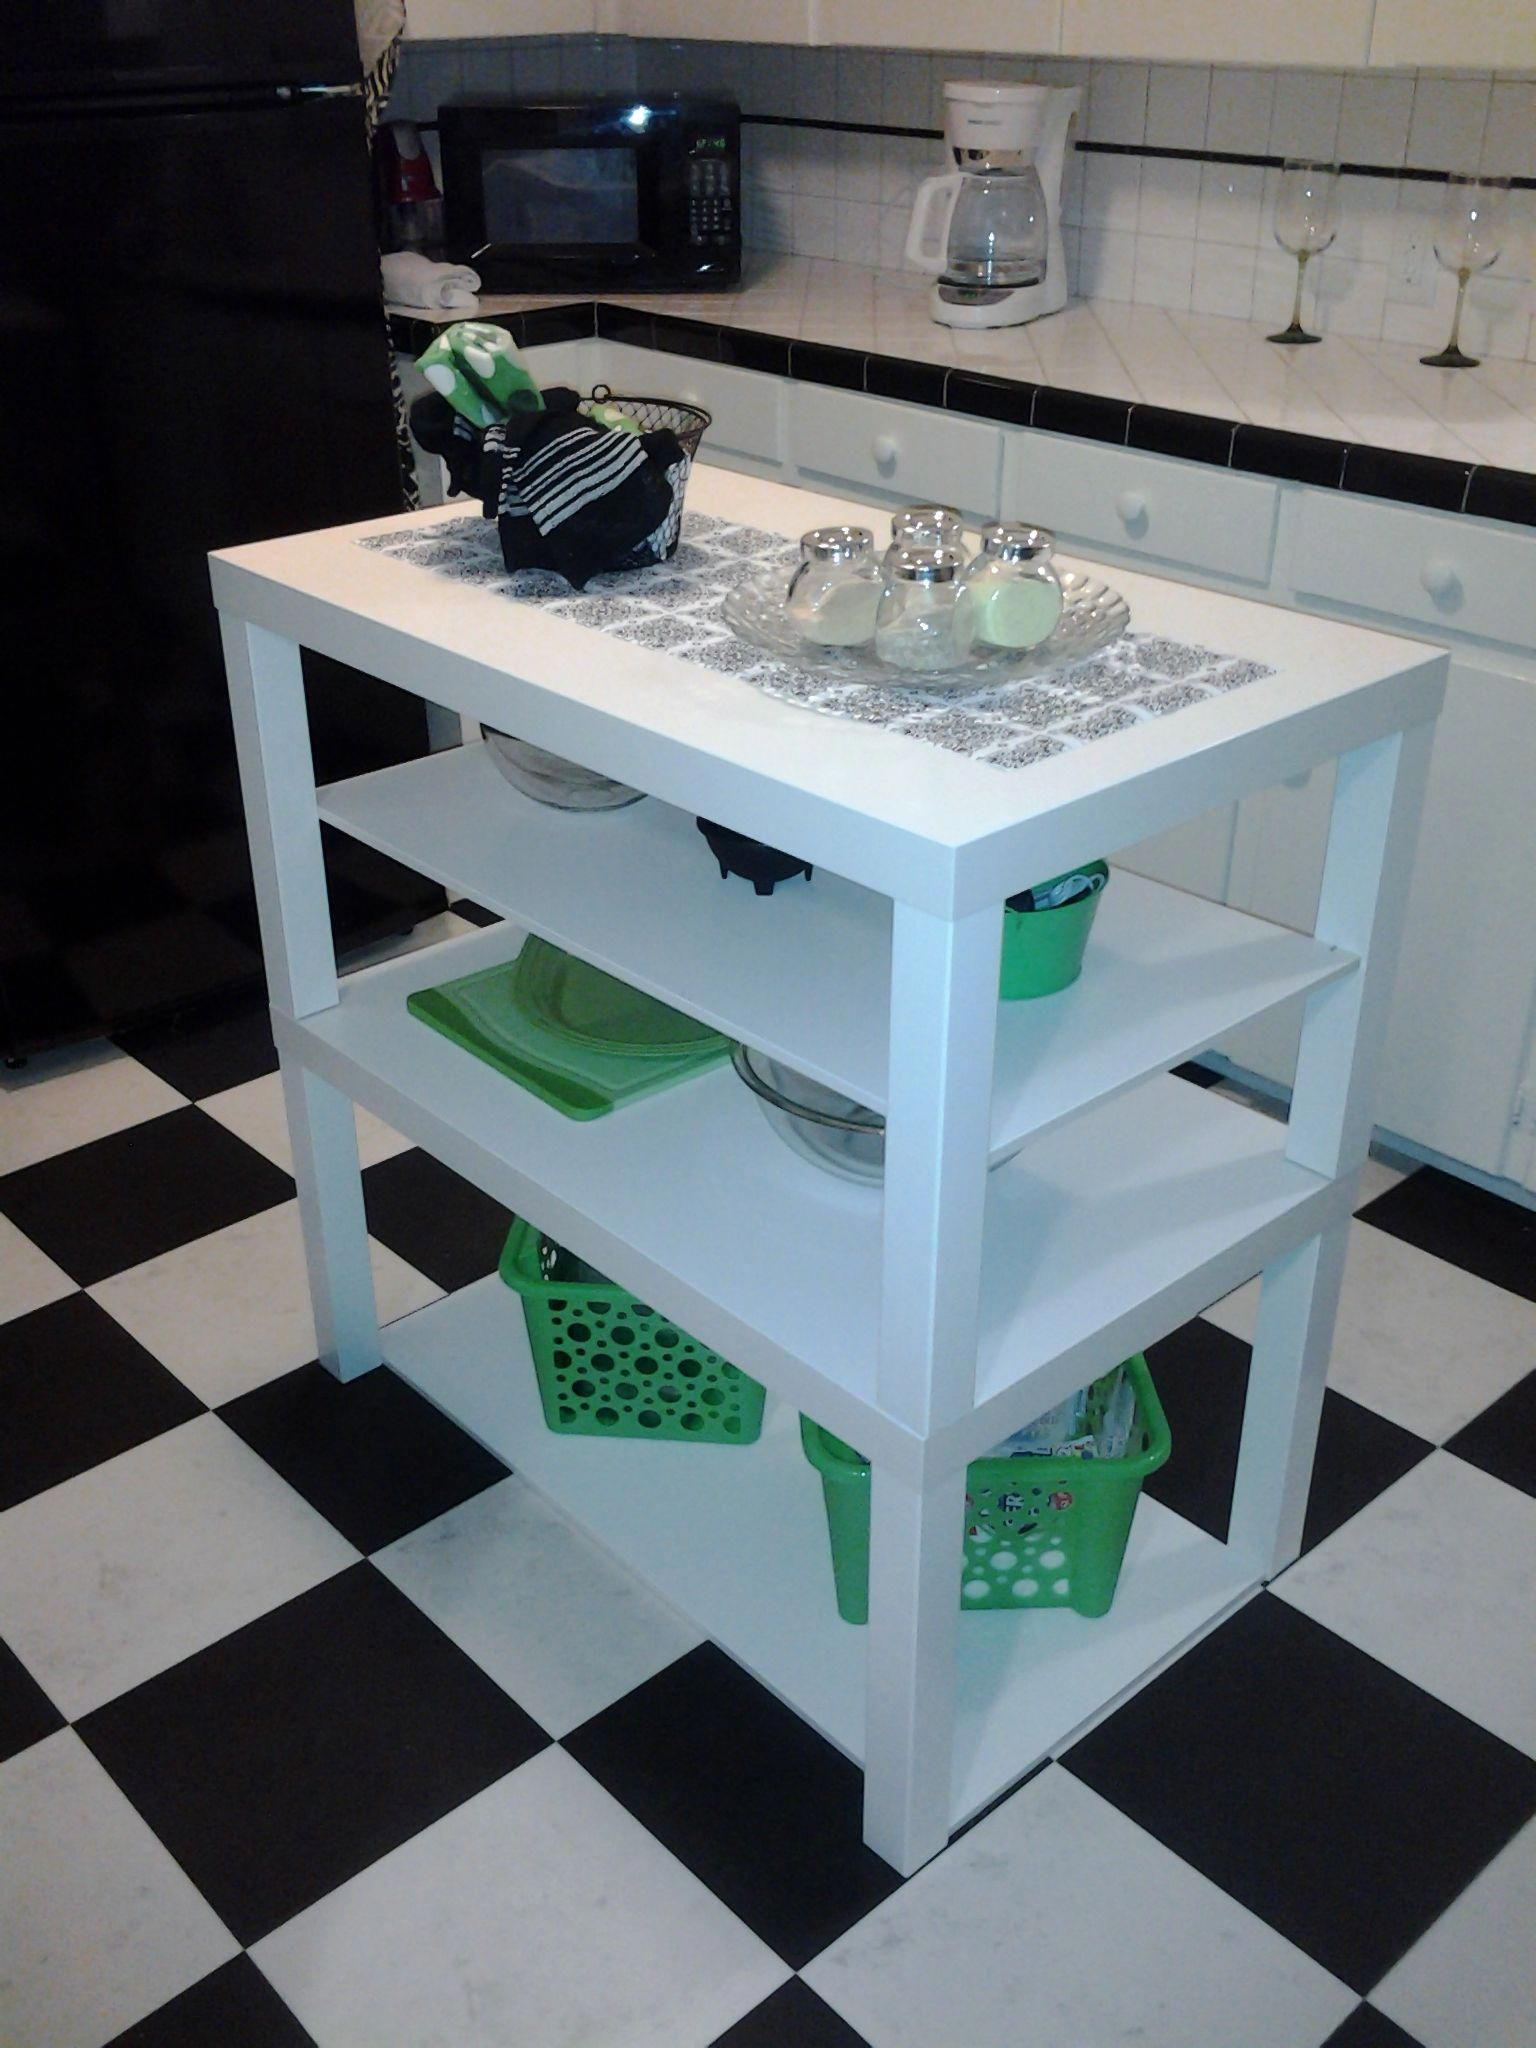 ikea hack ikea lack coffee tables turned cute little kitchen island by a diy beginner on kitchen island ideas diy ikea hacks id=63914